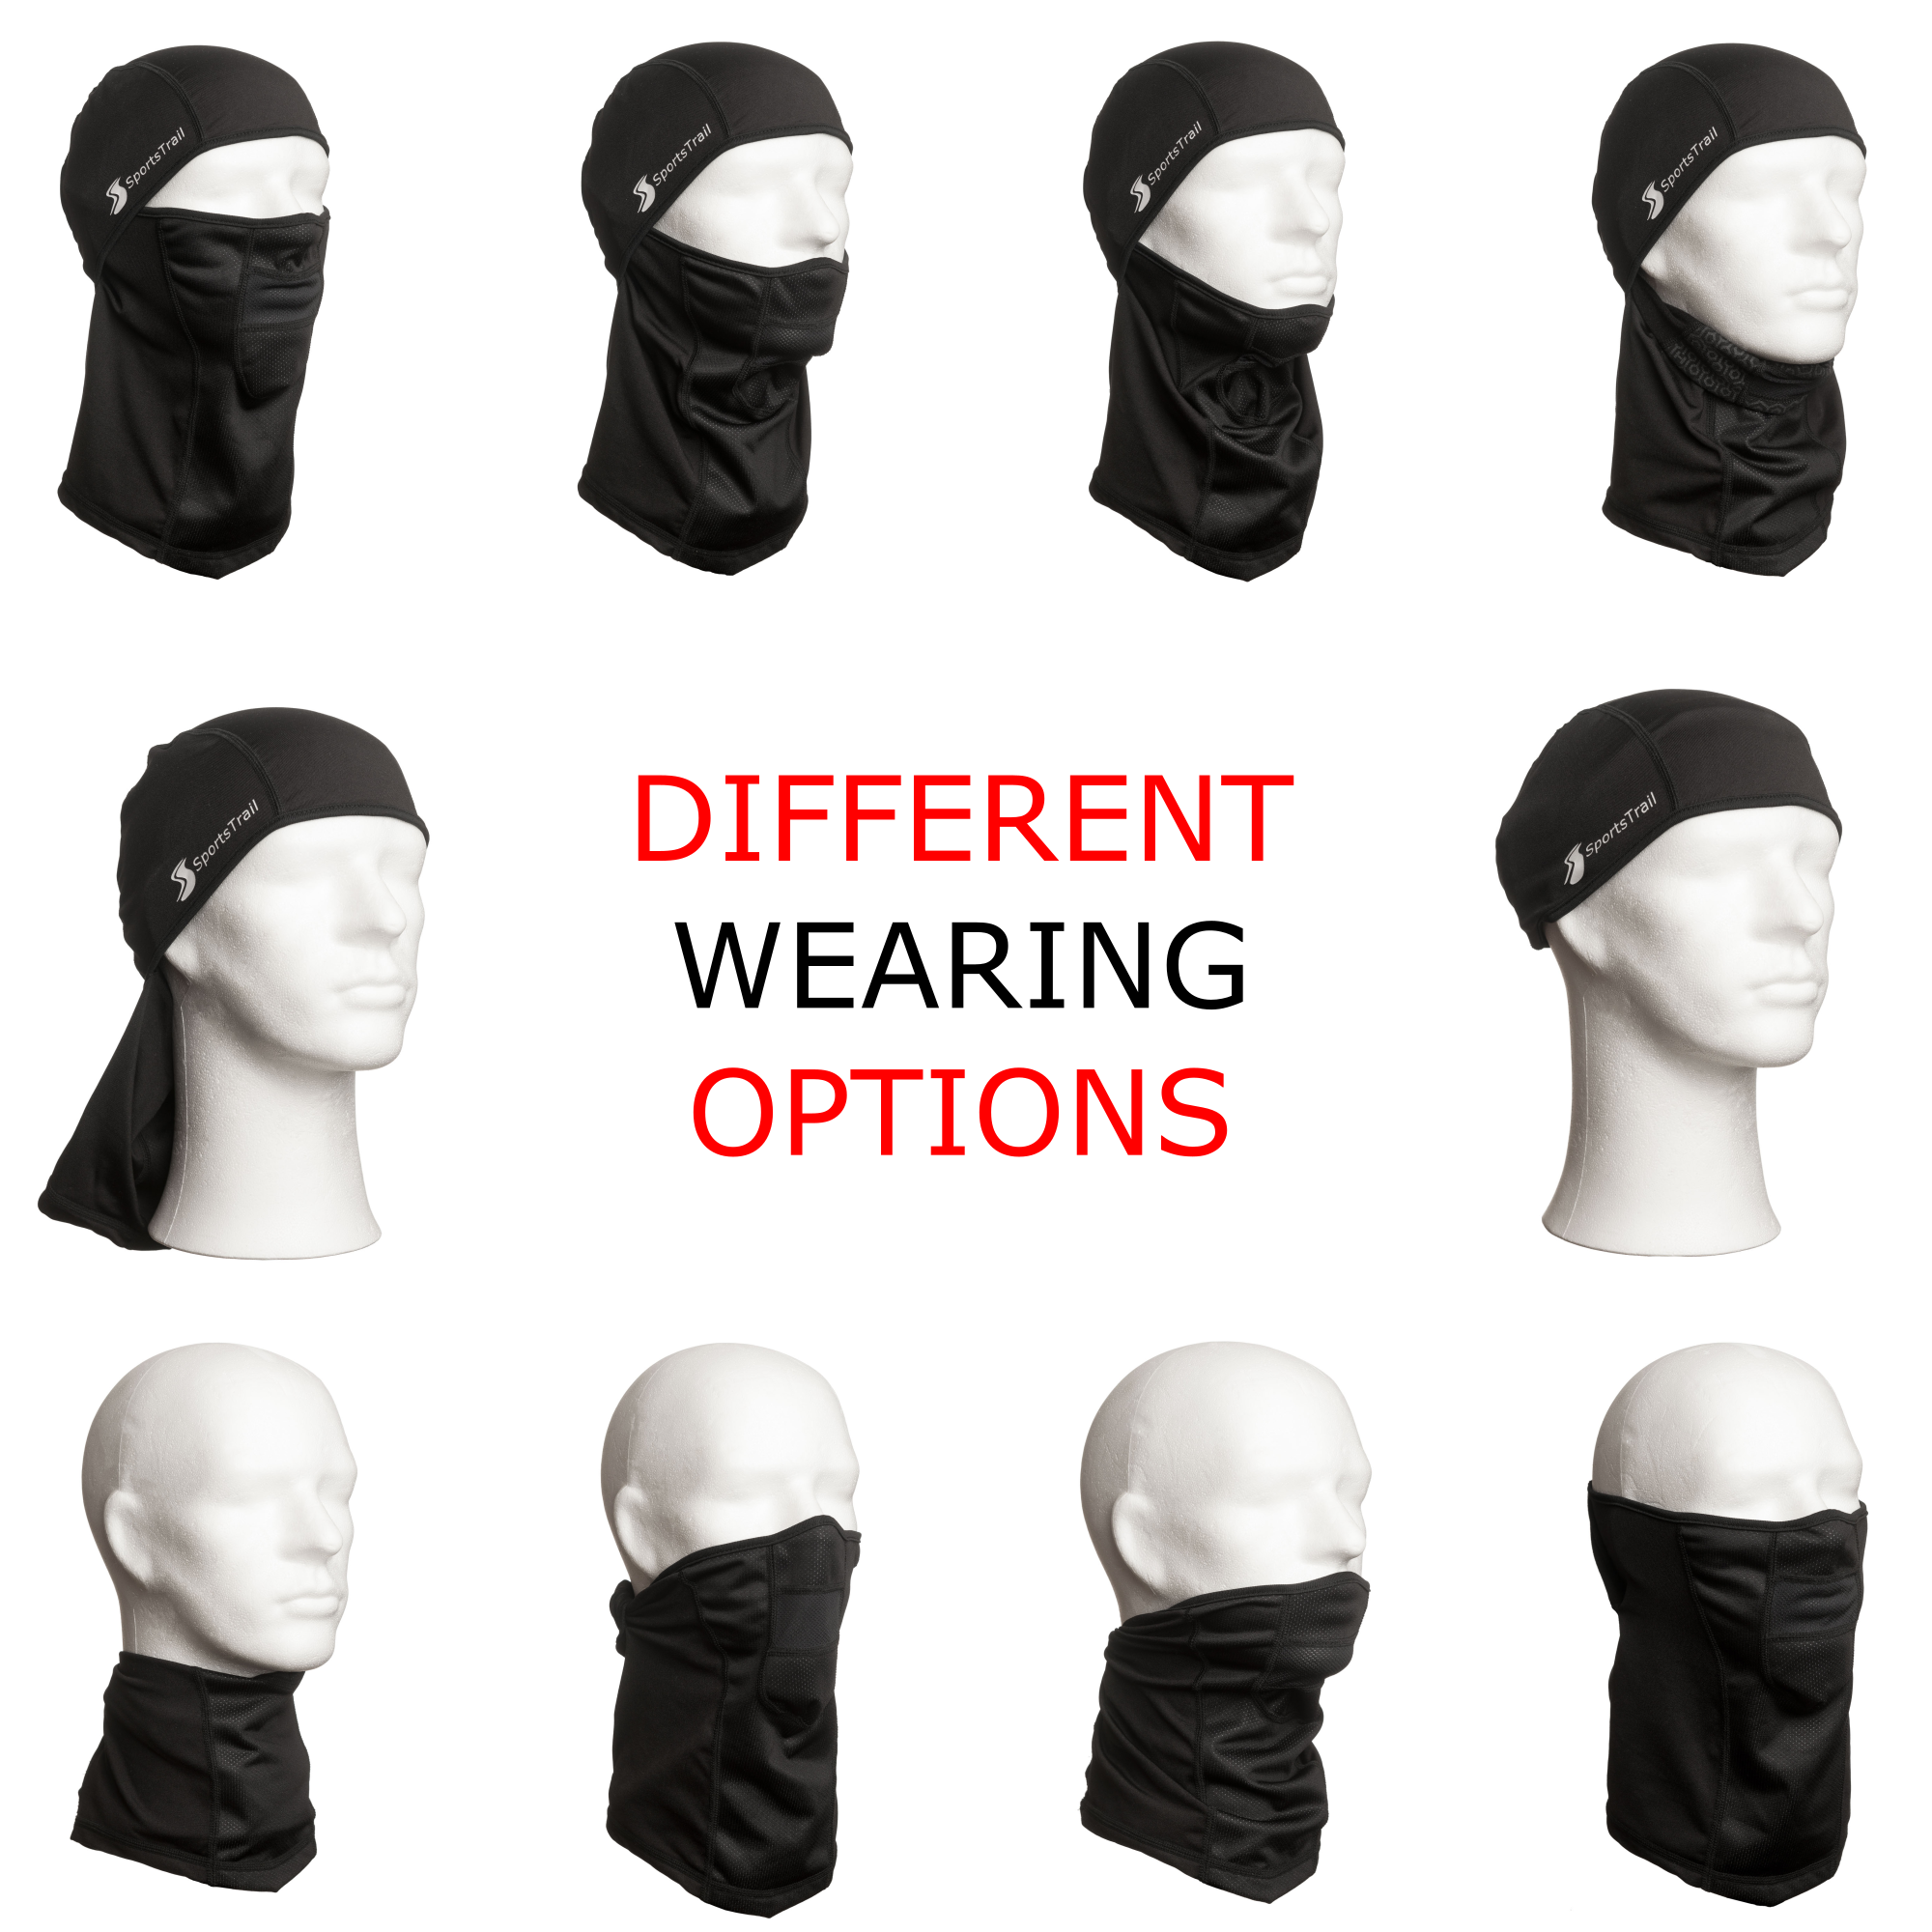 Different wearing options